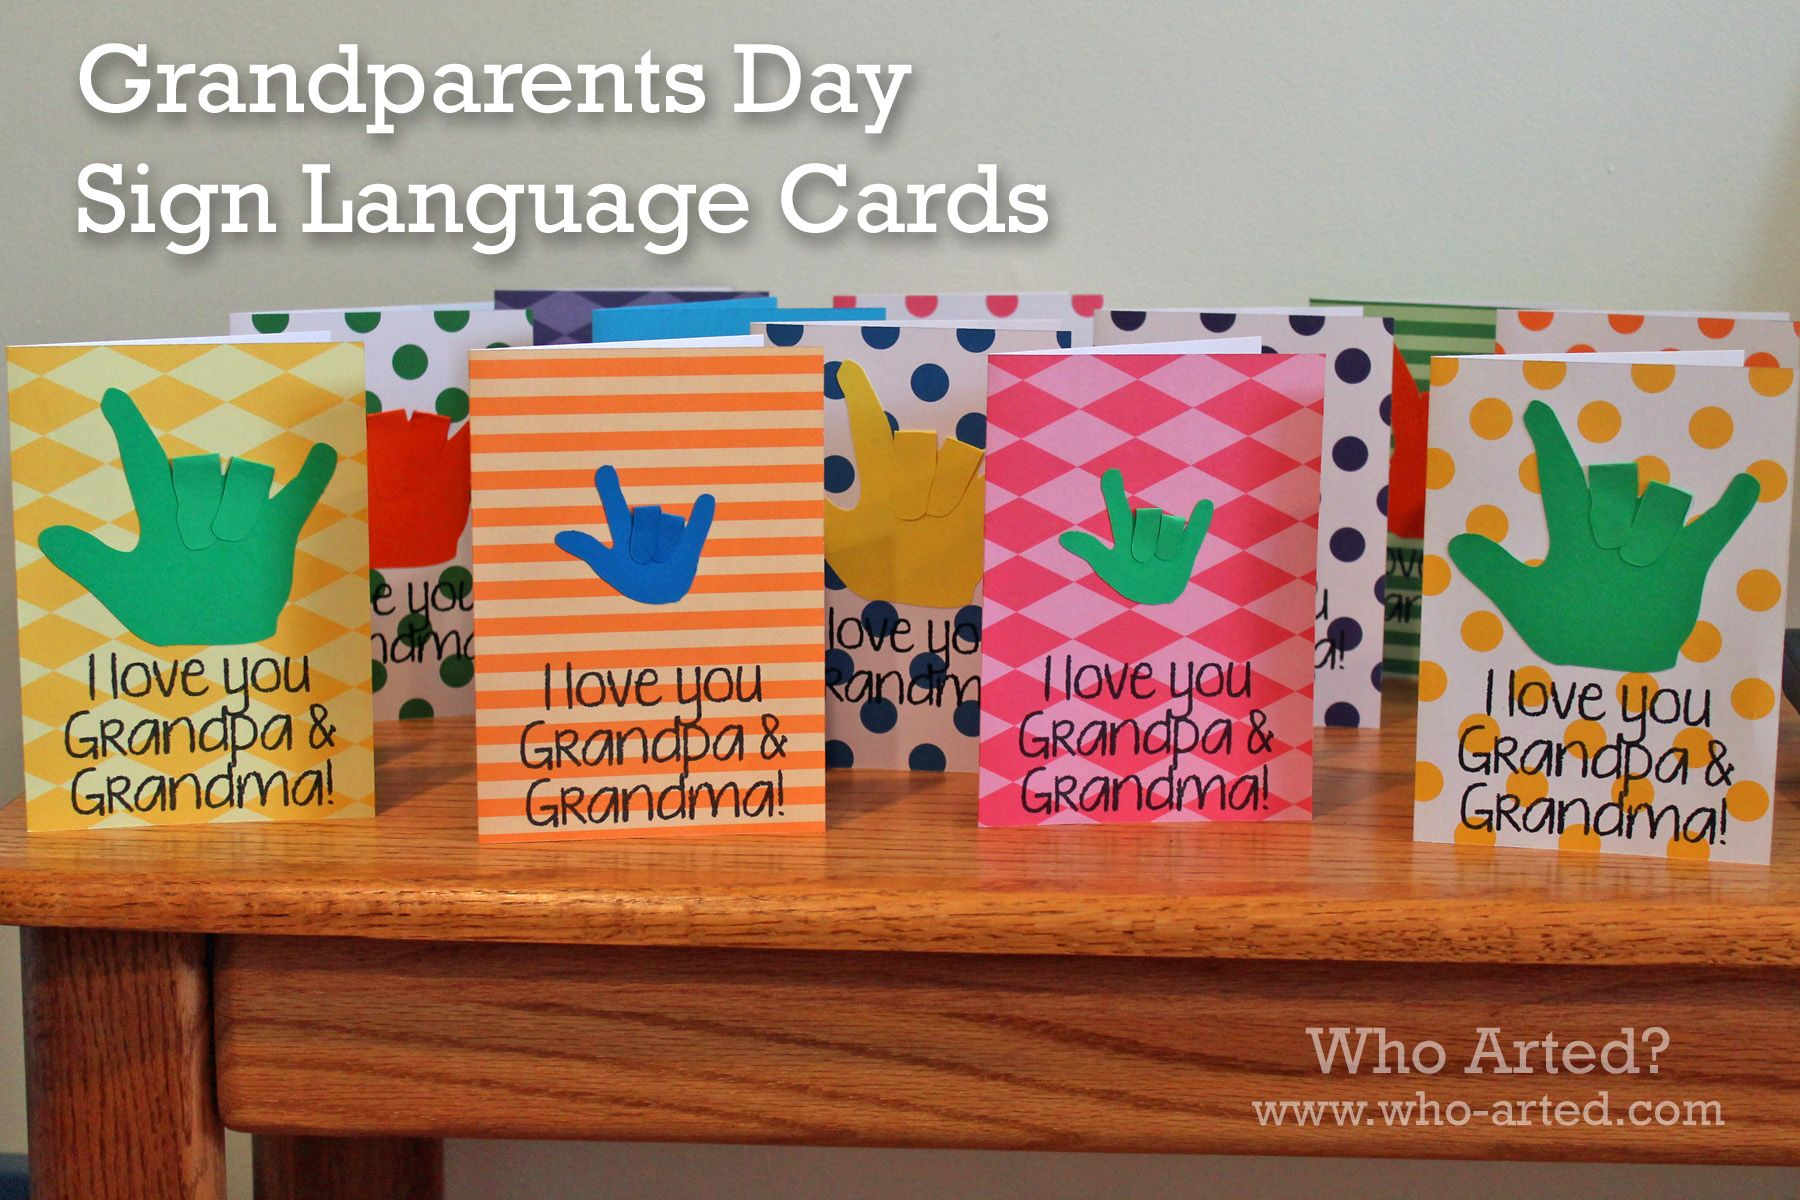 Grandparents Day Sign Language Cards Instructions And